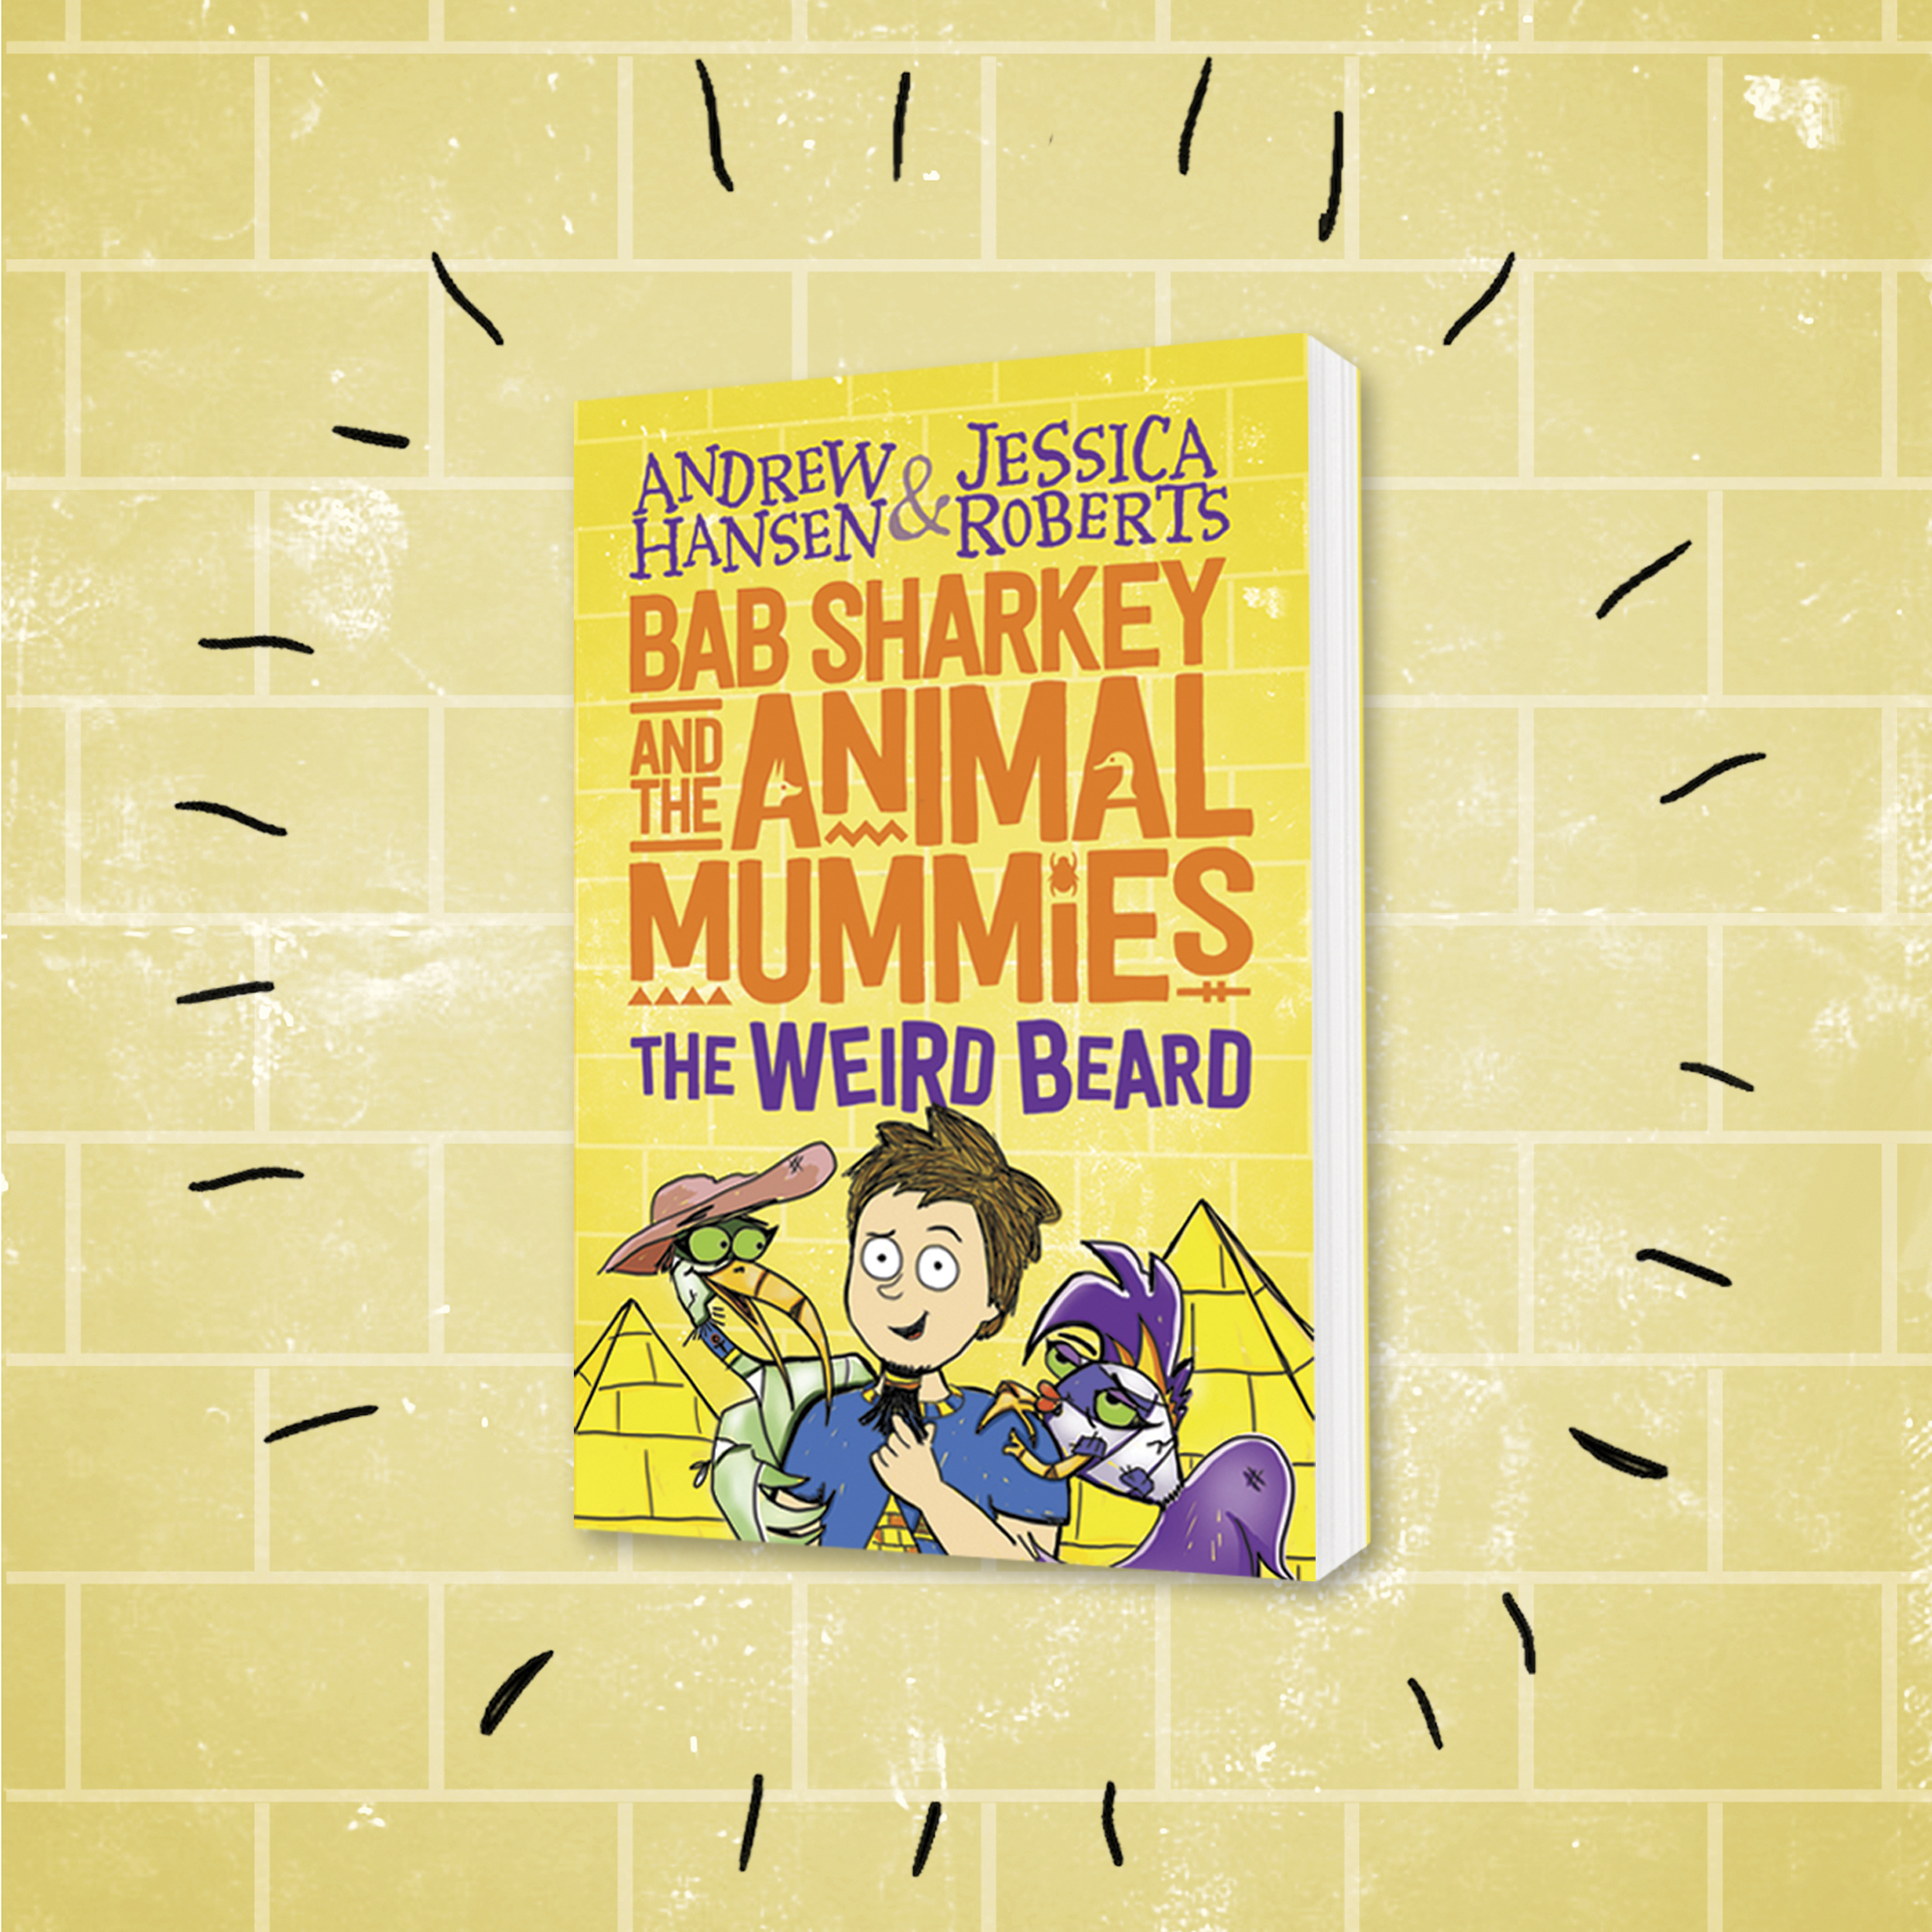 Bab Sharkey and the Animal Mummies: The Weird Beard by Andrew Hansen and Jessica Roberts.